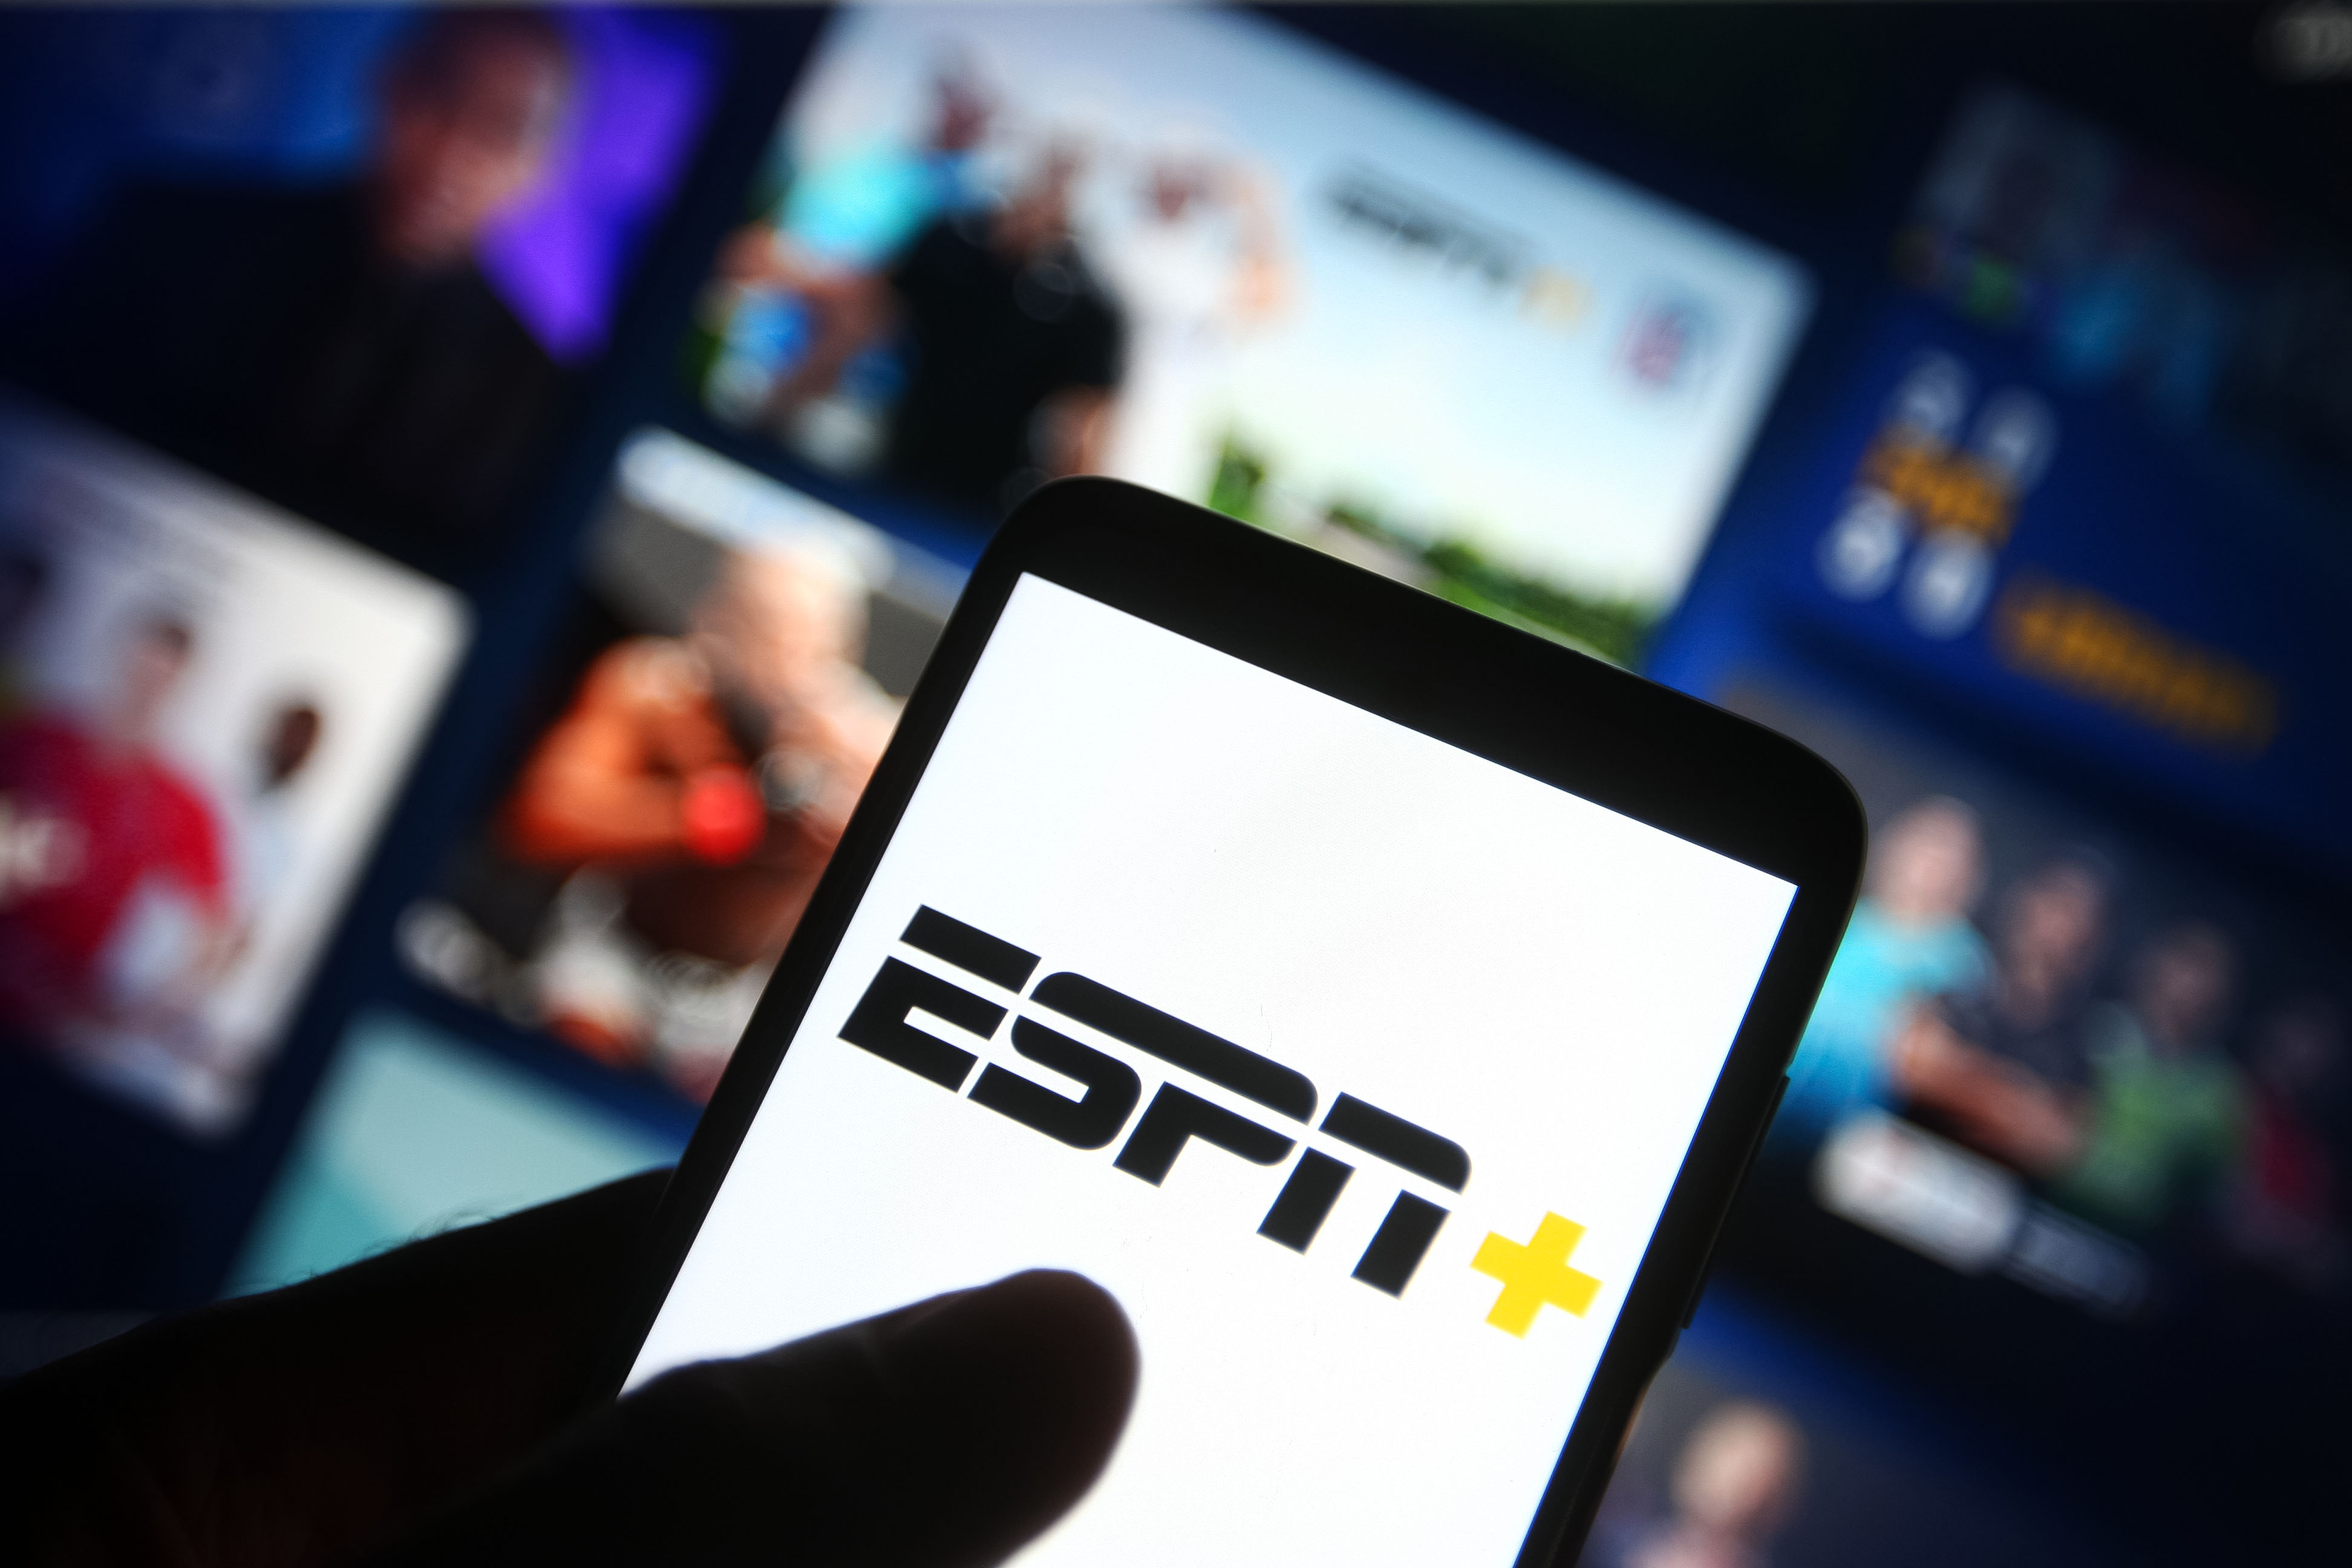 In this photo illustration the ESPN+ (ESPN Plus) logo of an US video streaming service is seen on a smartphone with its website in the background.